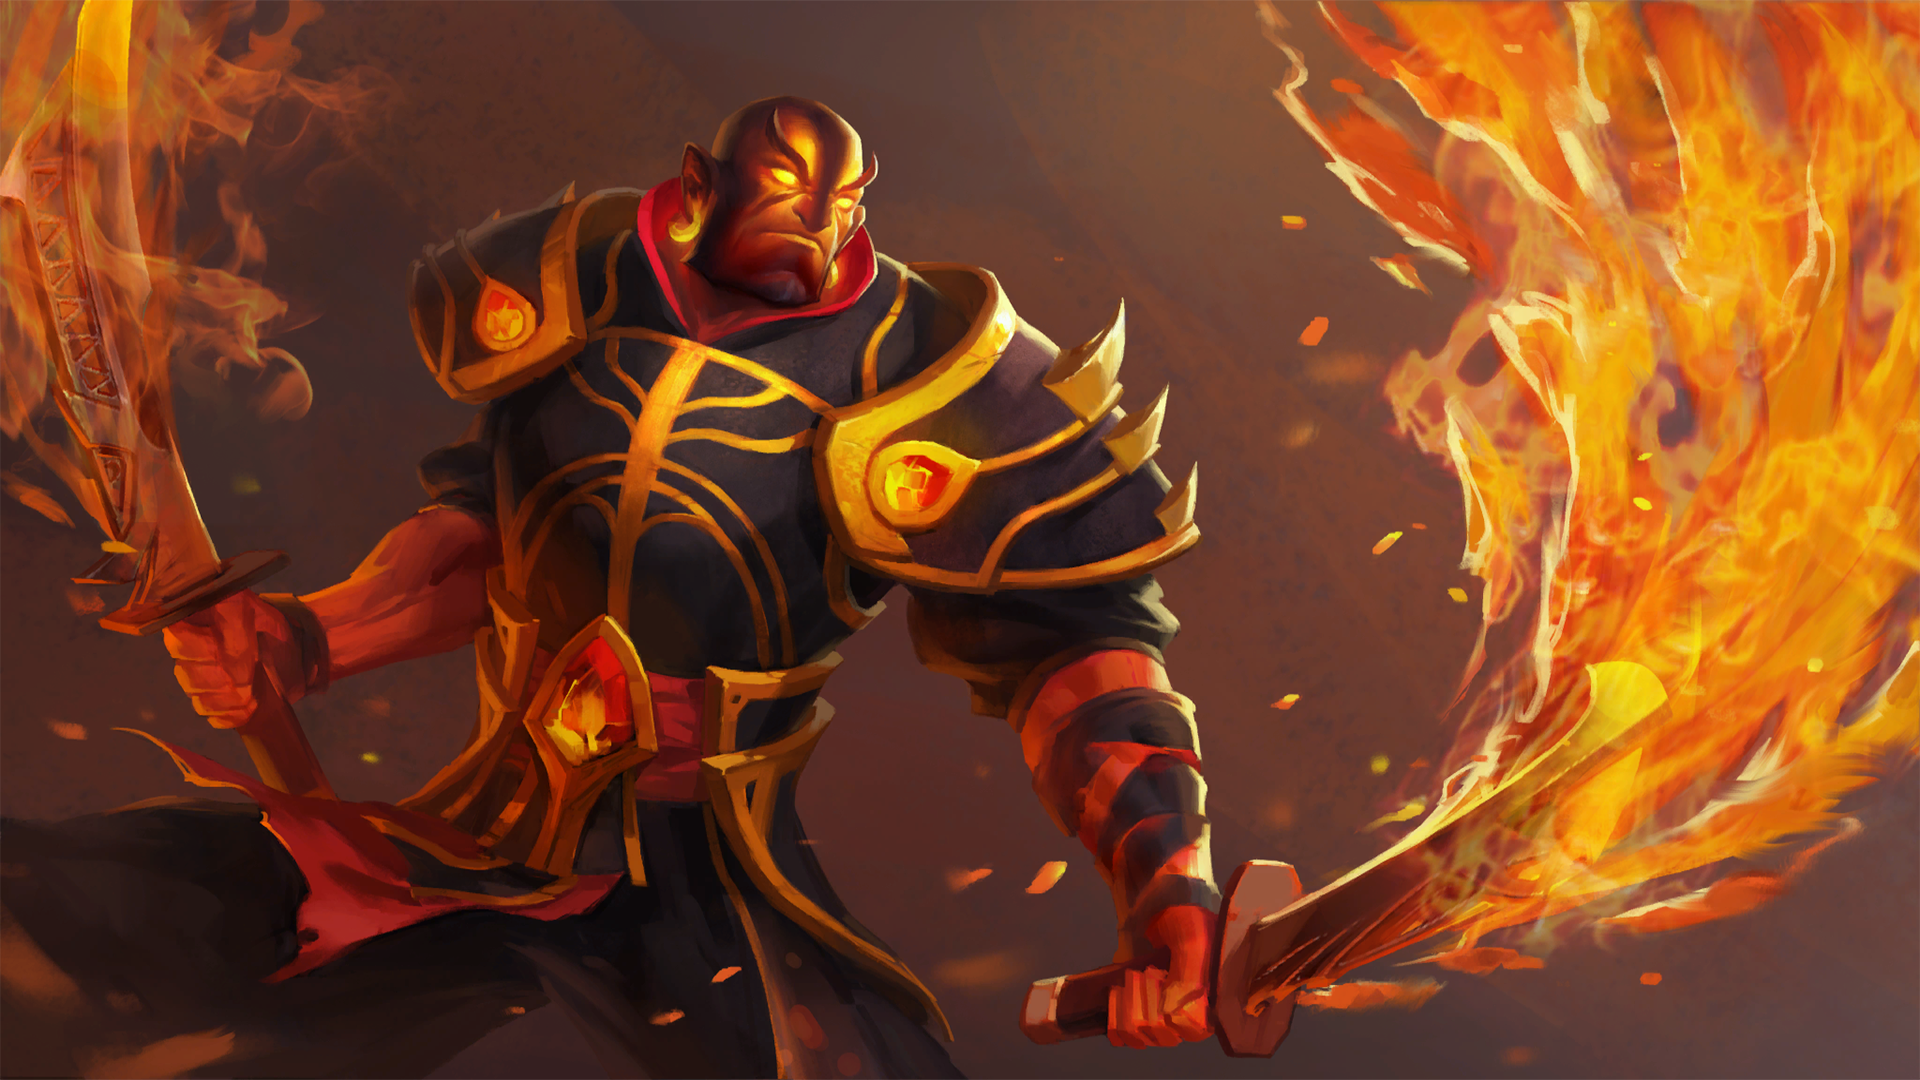 Dota 2 Ember Spirit hero guide: Strategy, tips, and tricks | Dot Esports